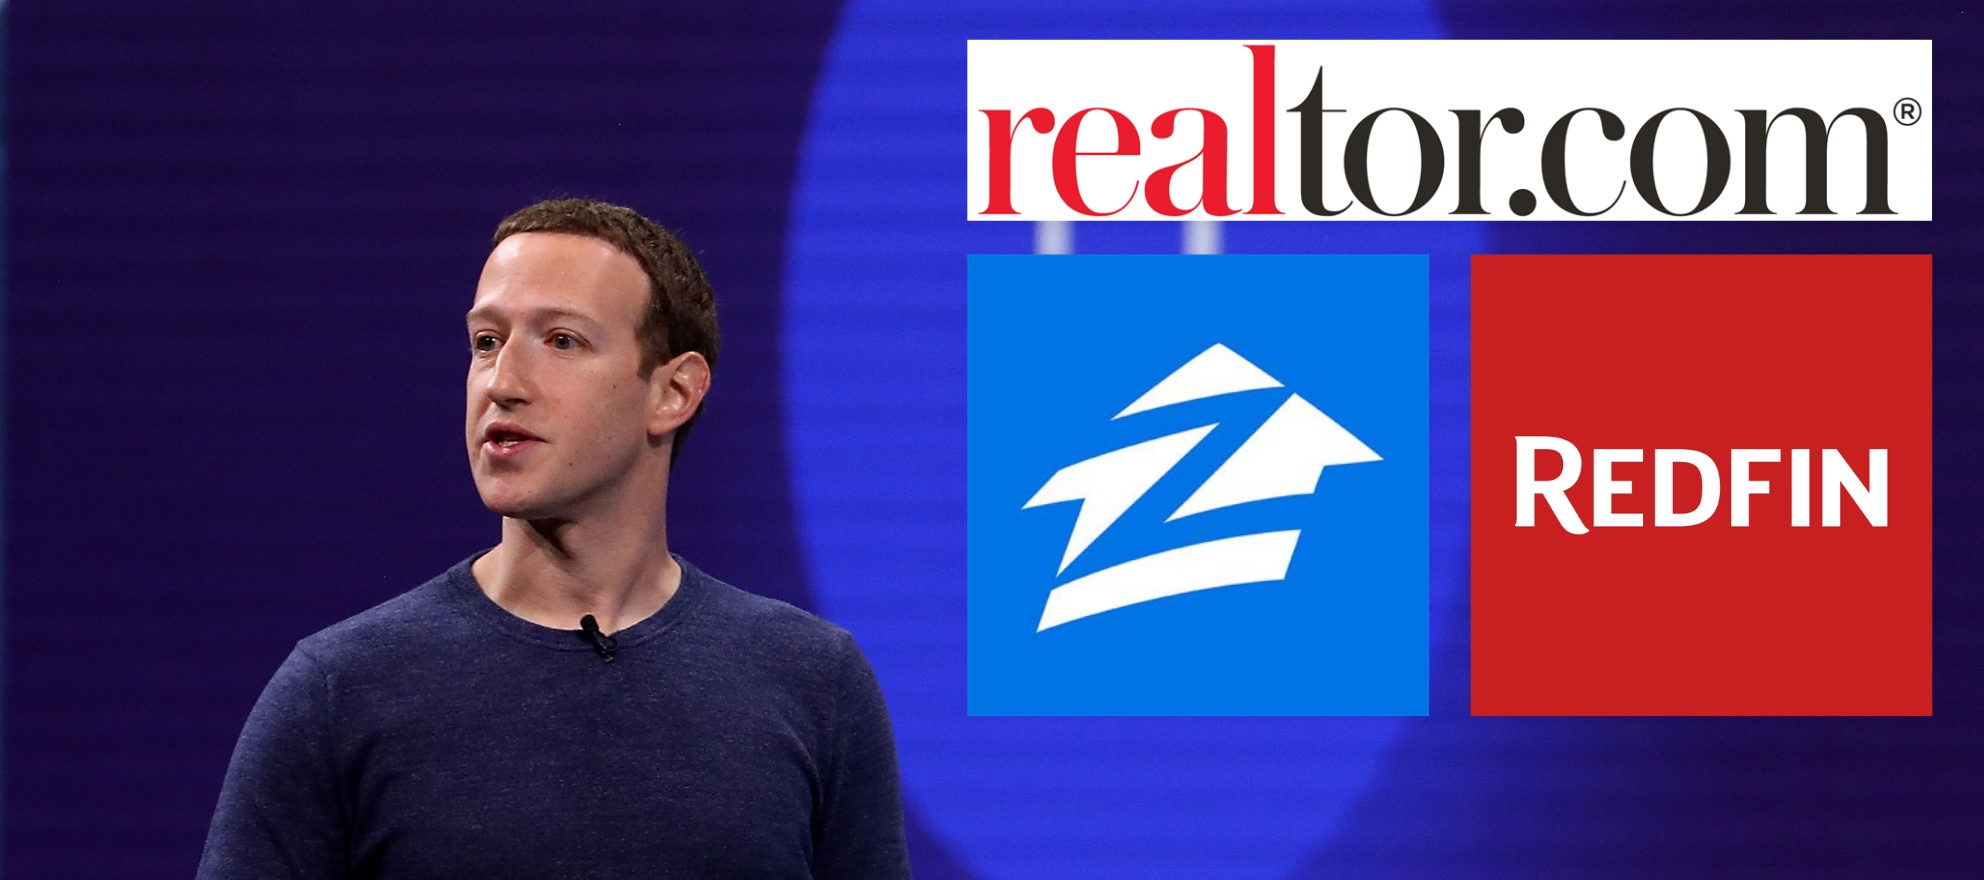 Real estate apps are sharing user data with Facebook